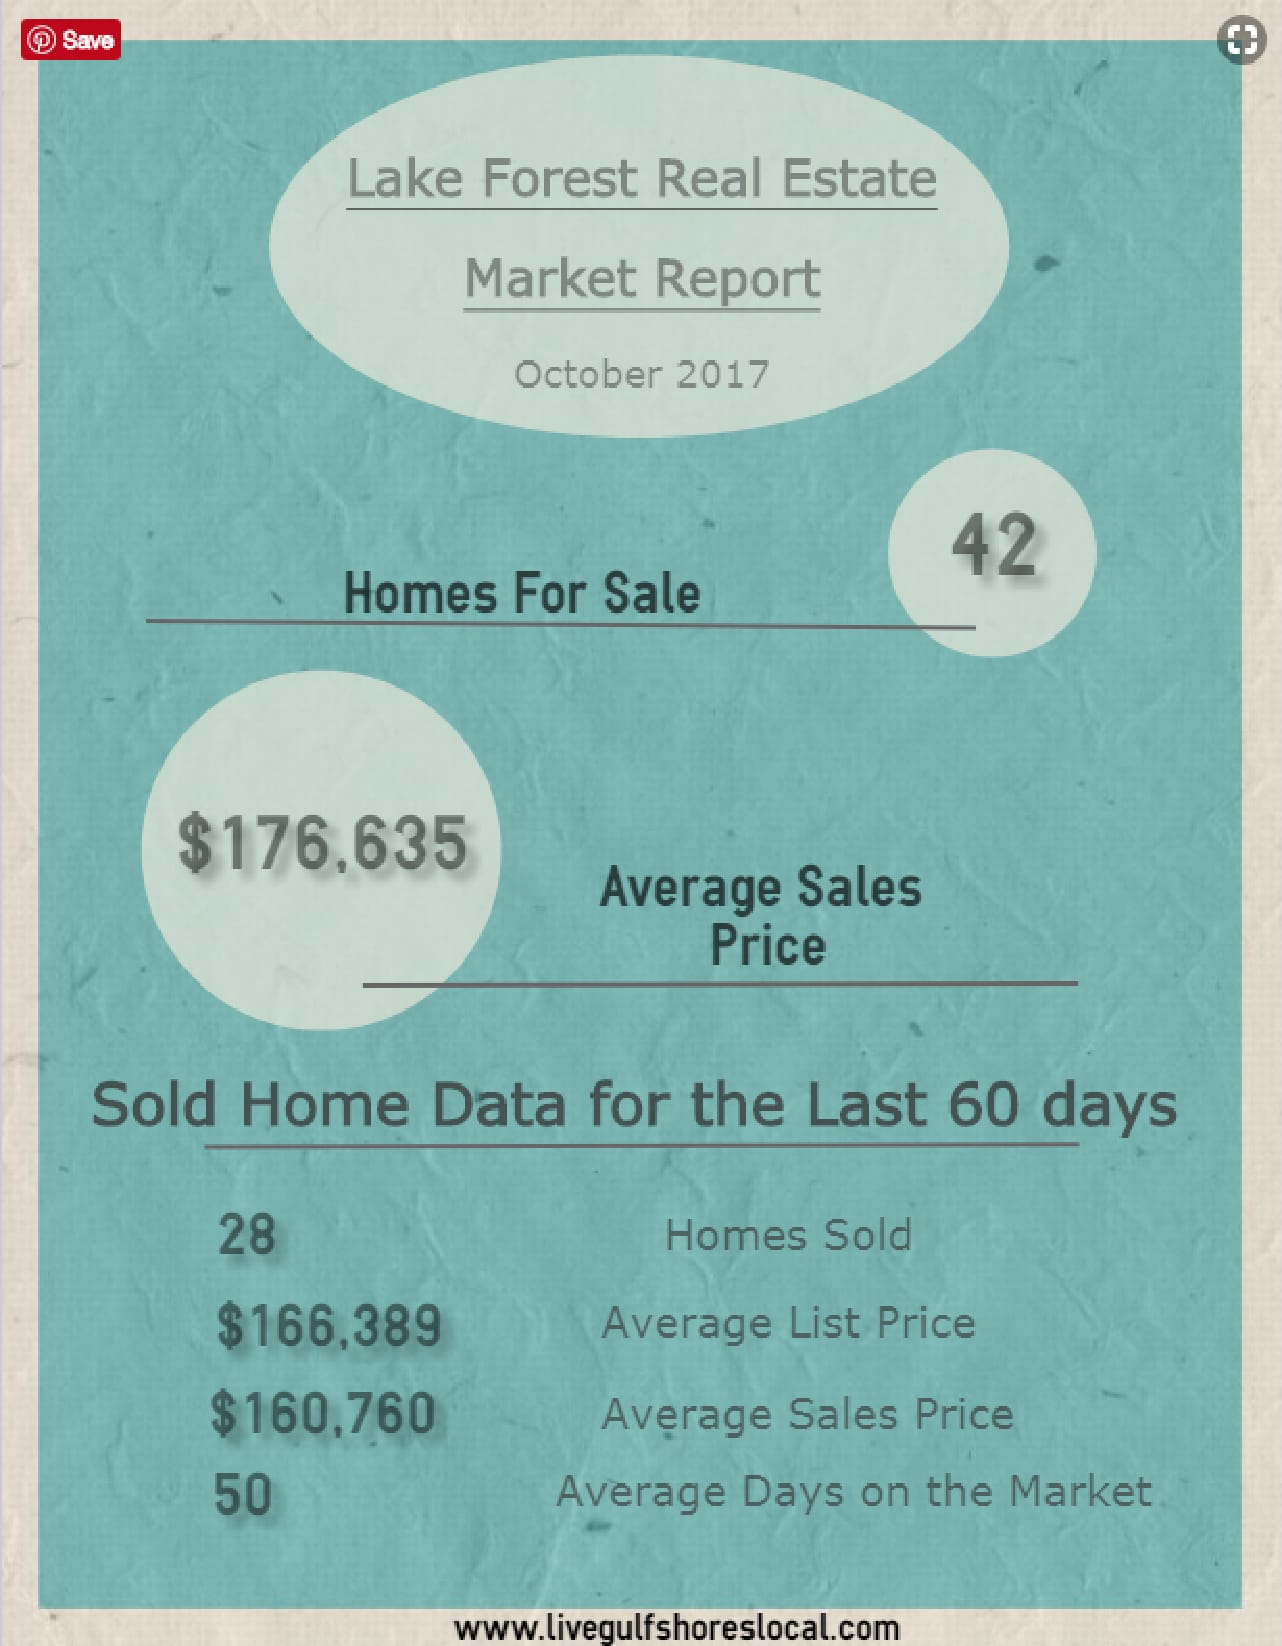 Lake Forest market report